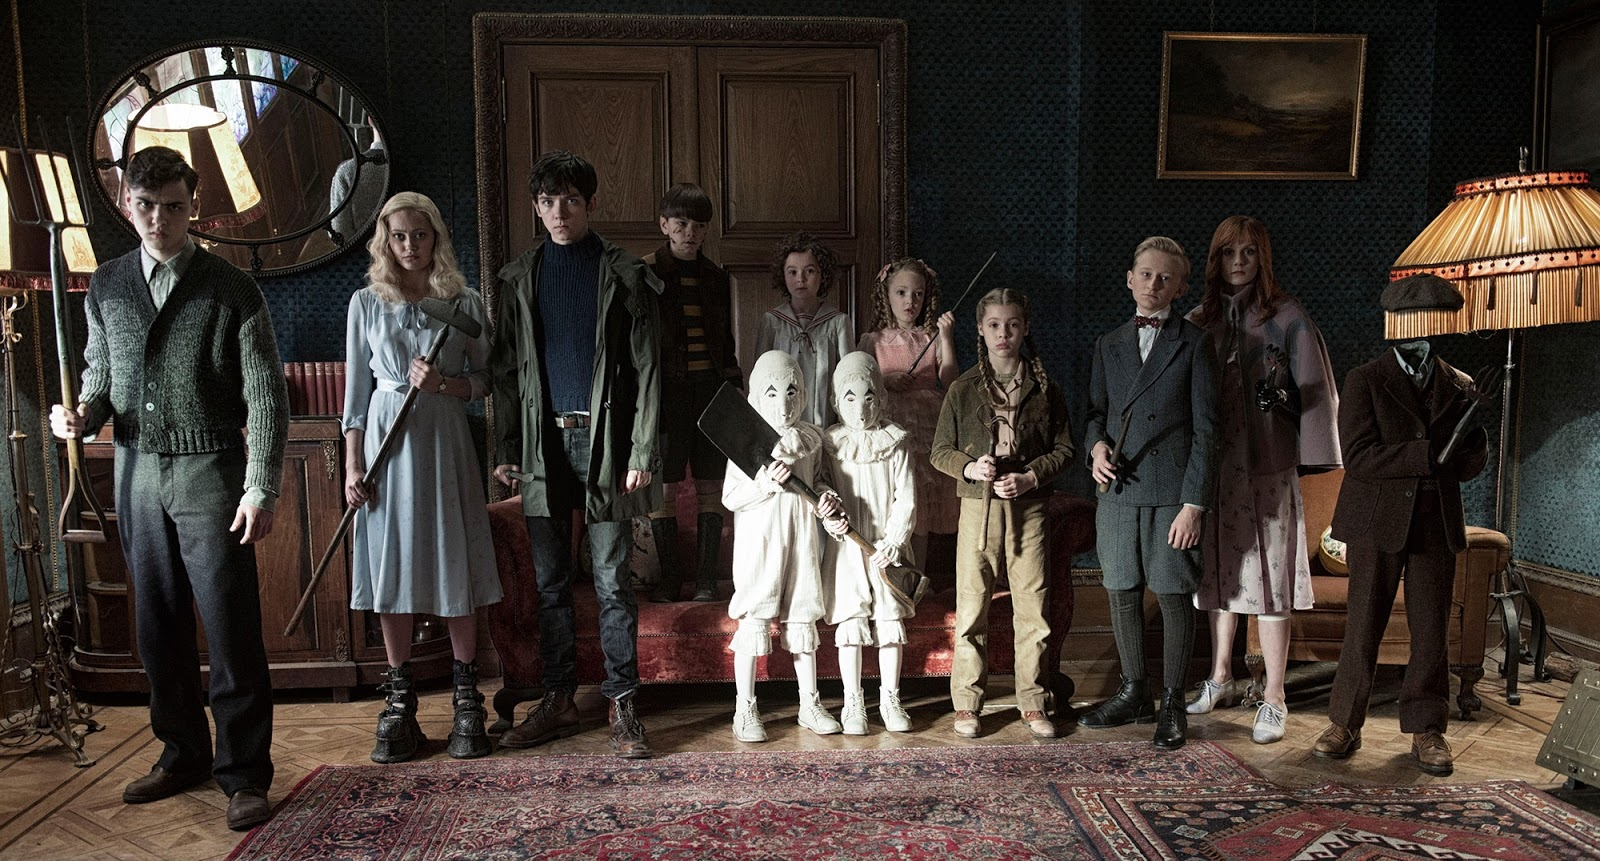 MOVIES: Miss Peregrine's Home for Peculiar Children - Review